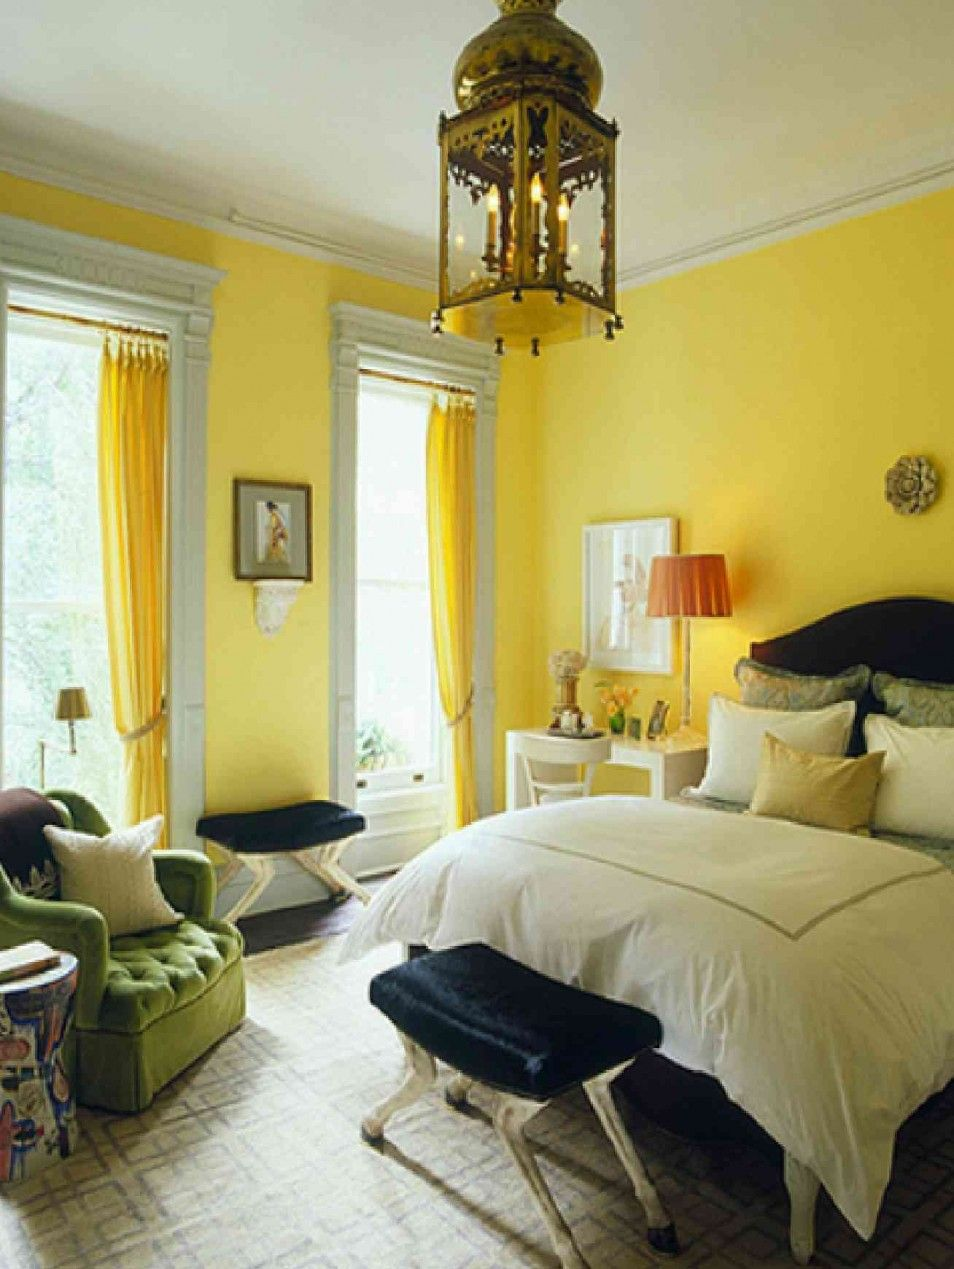 Green And Yellow Room Comely Yellow Bedroom Simple Design On Bedroom ...